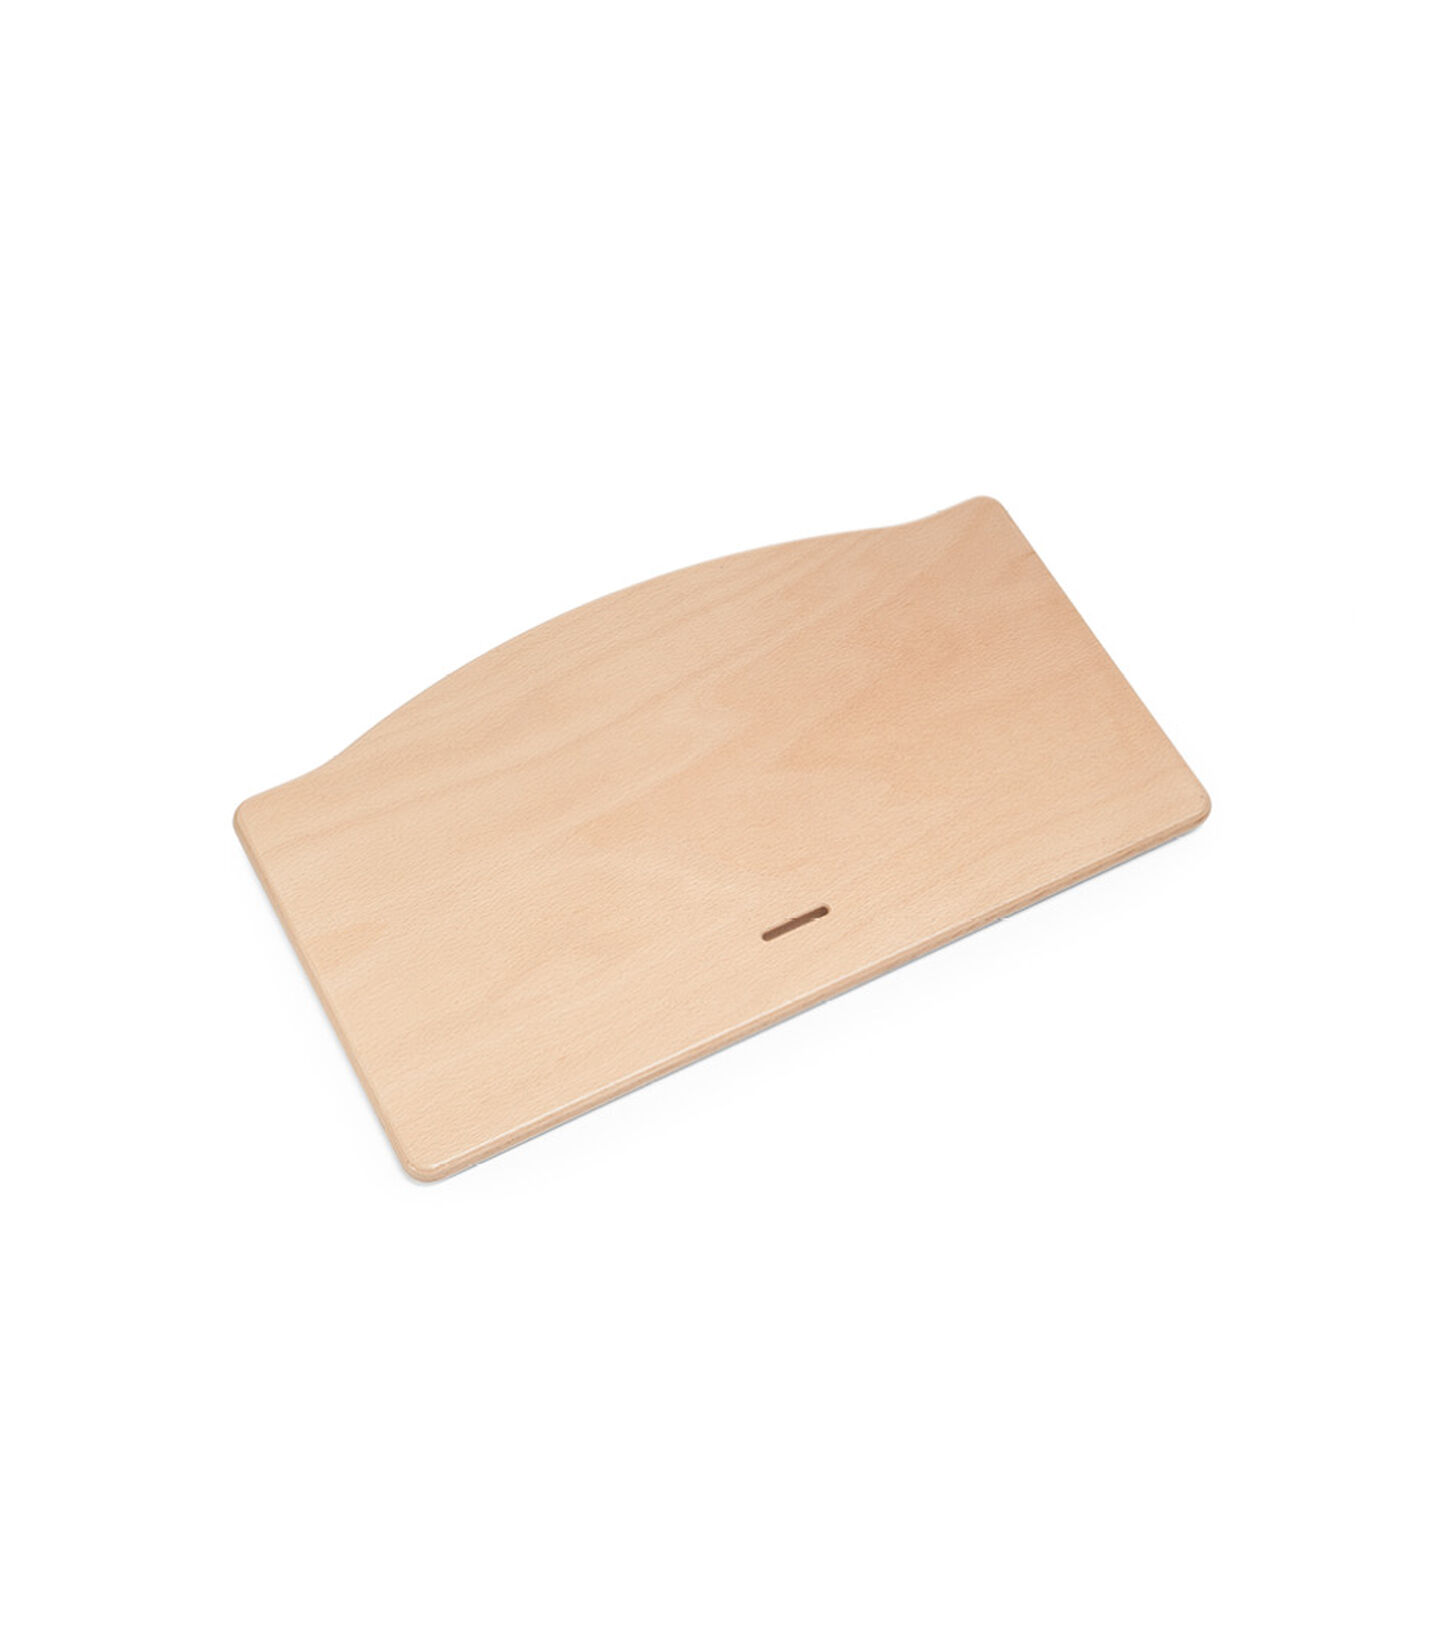 108801 Tripp Trapp Seat plate Natural (Spare part). view 2